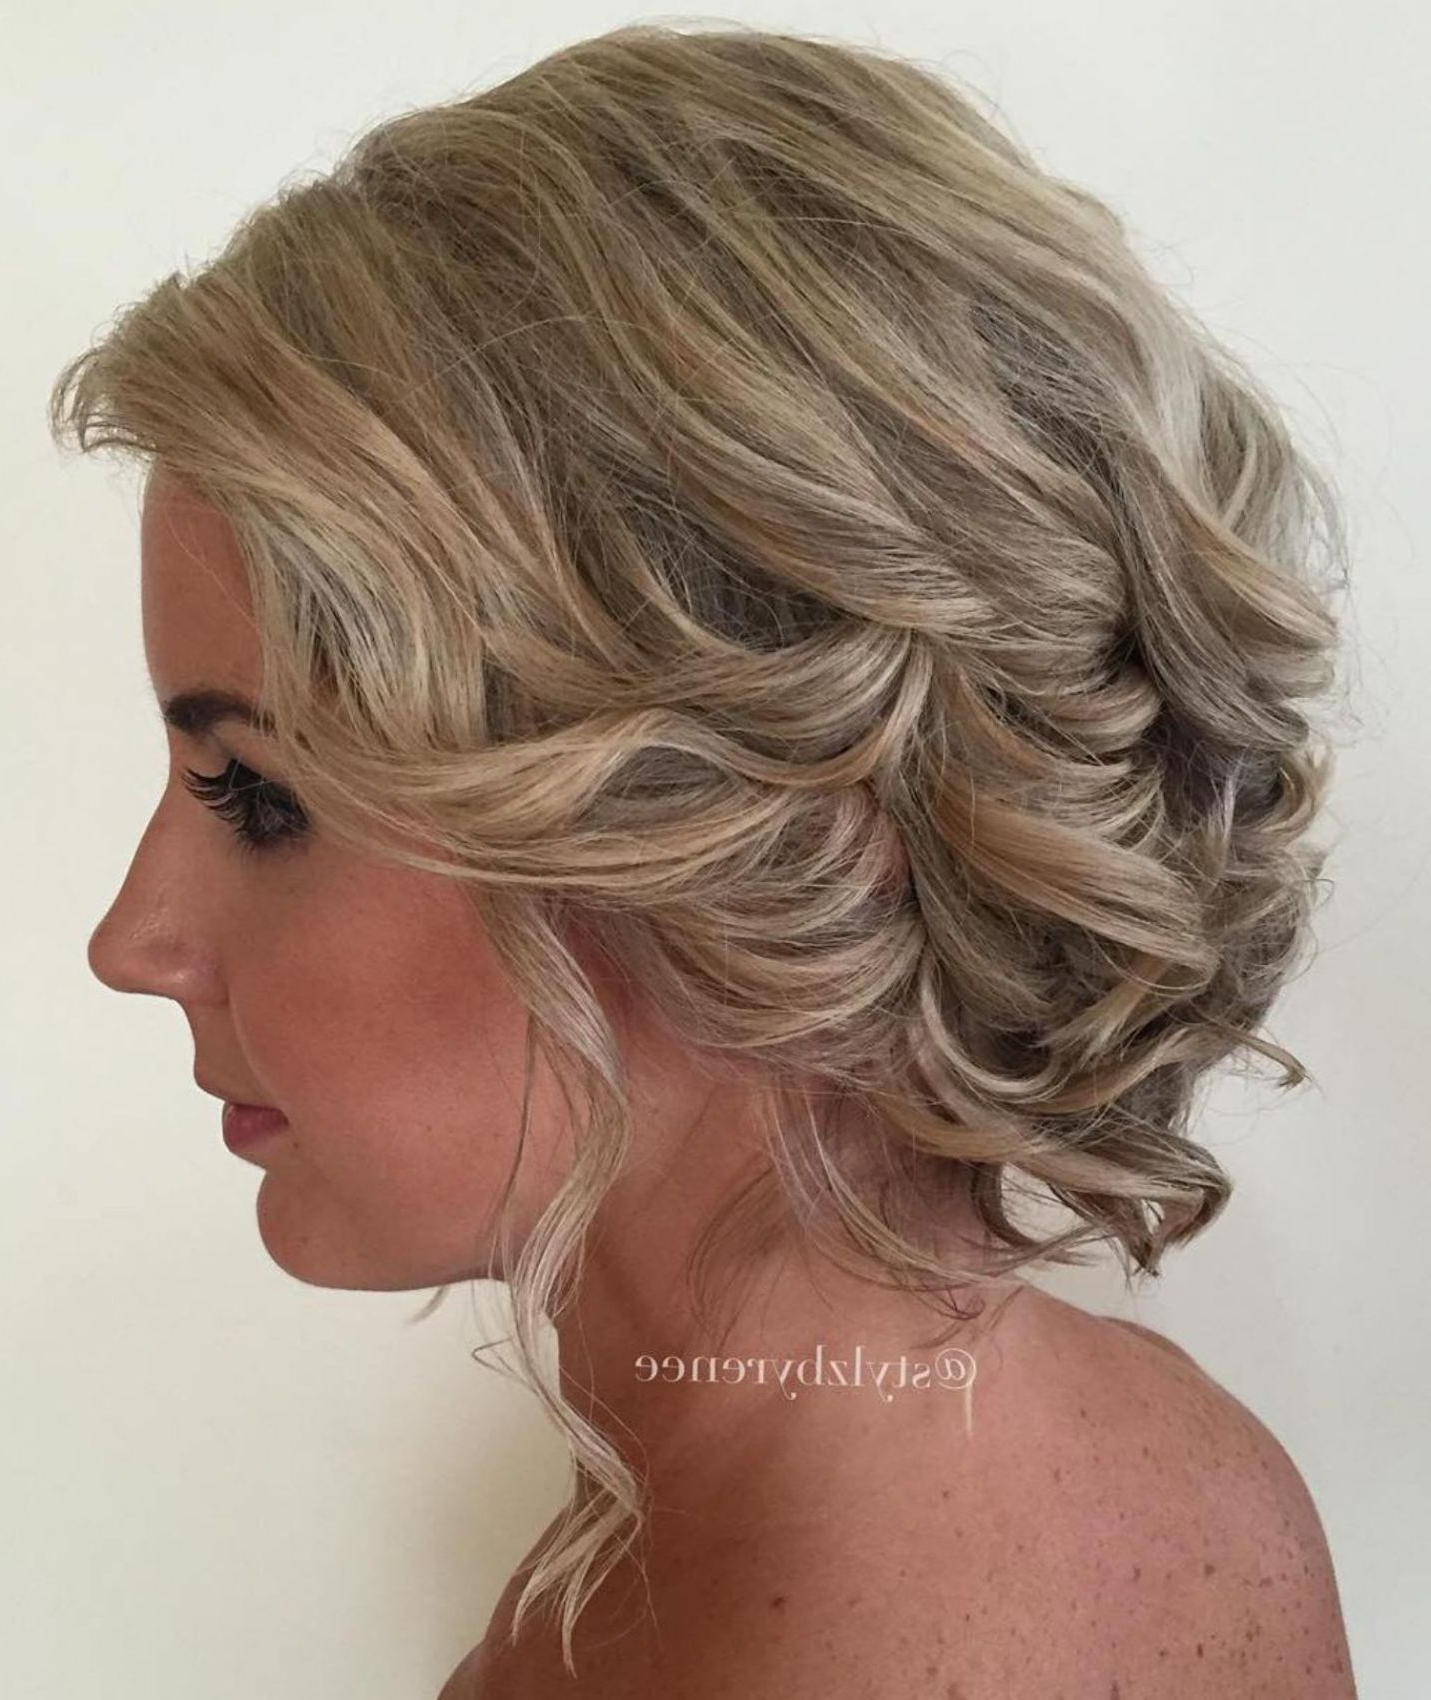 2017 Wavy And Wispy Blonde Updo Wedding Hairstyles Within 60 Updos For Short Hair – Your Creative Short Hair Inspiration (View 1 of 20)